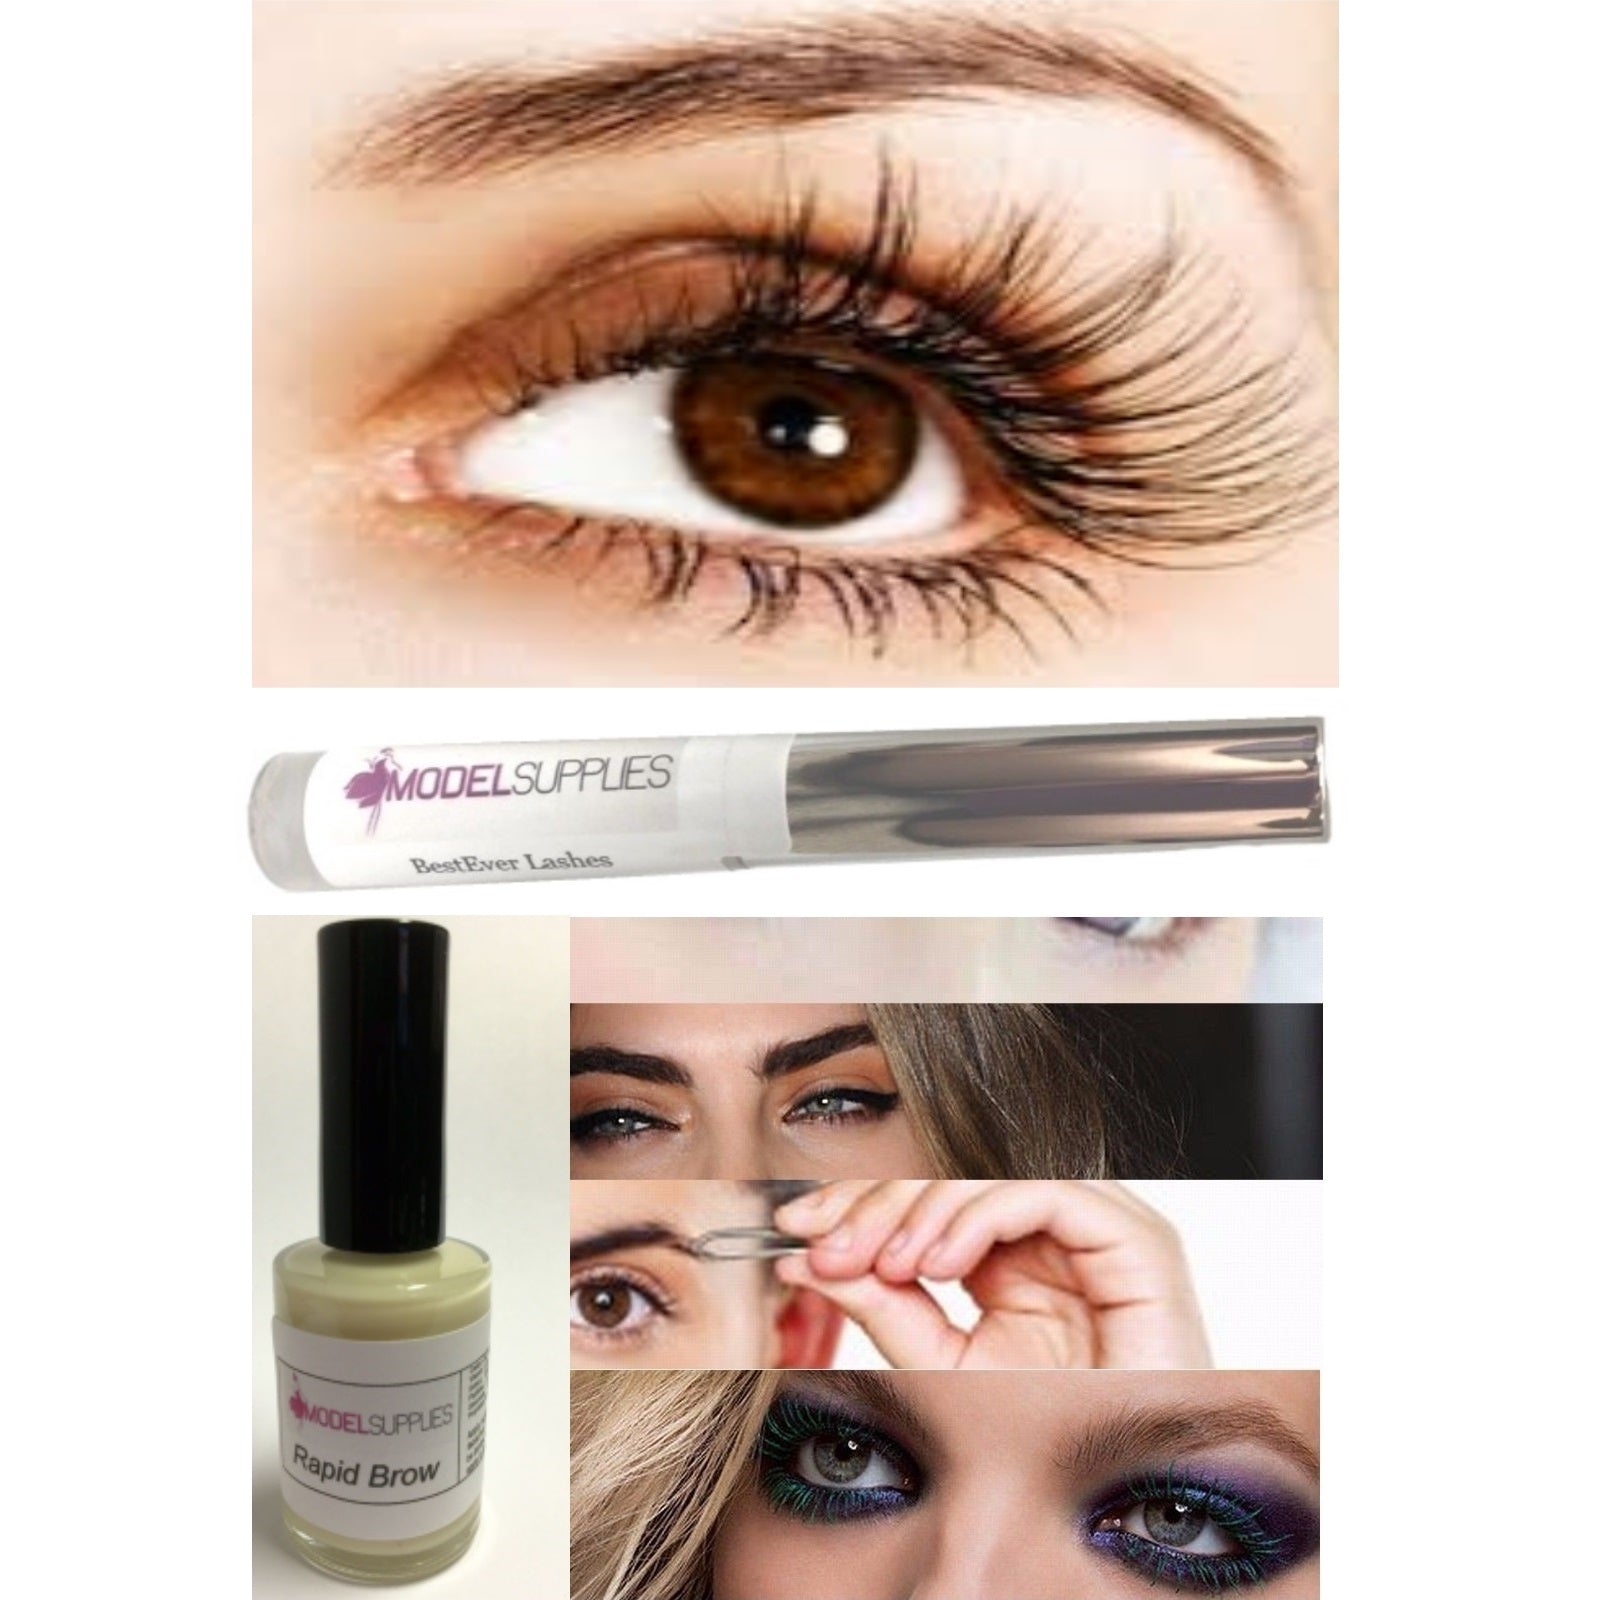 2pc LOT Rapid Brow & BestEver Lashes Shaping Hair Growth Grow Eyebrows Lash Fast